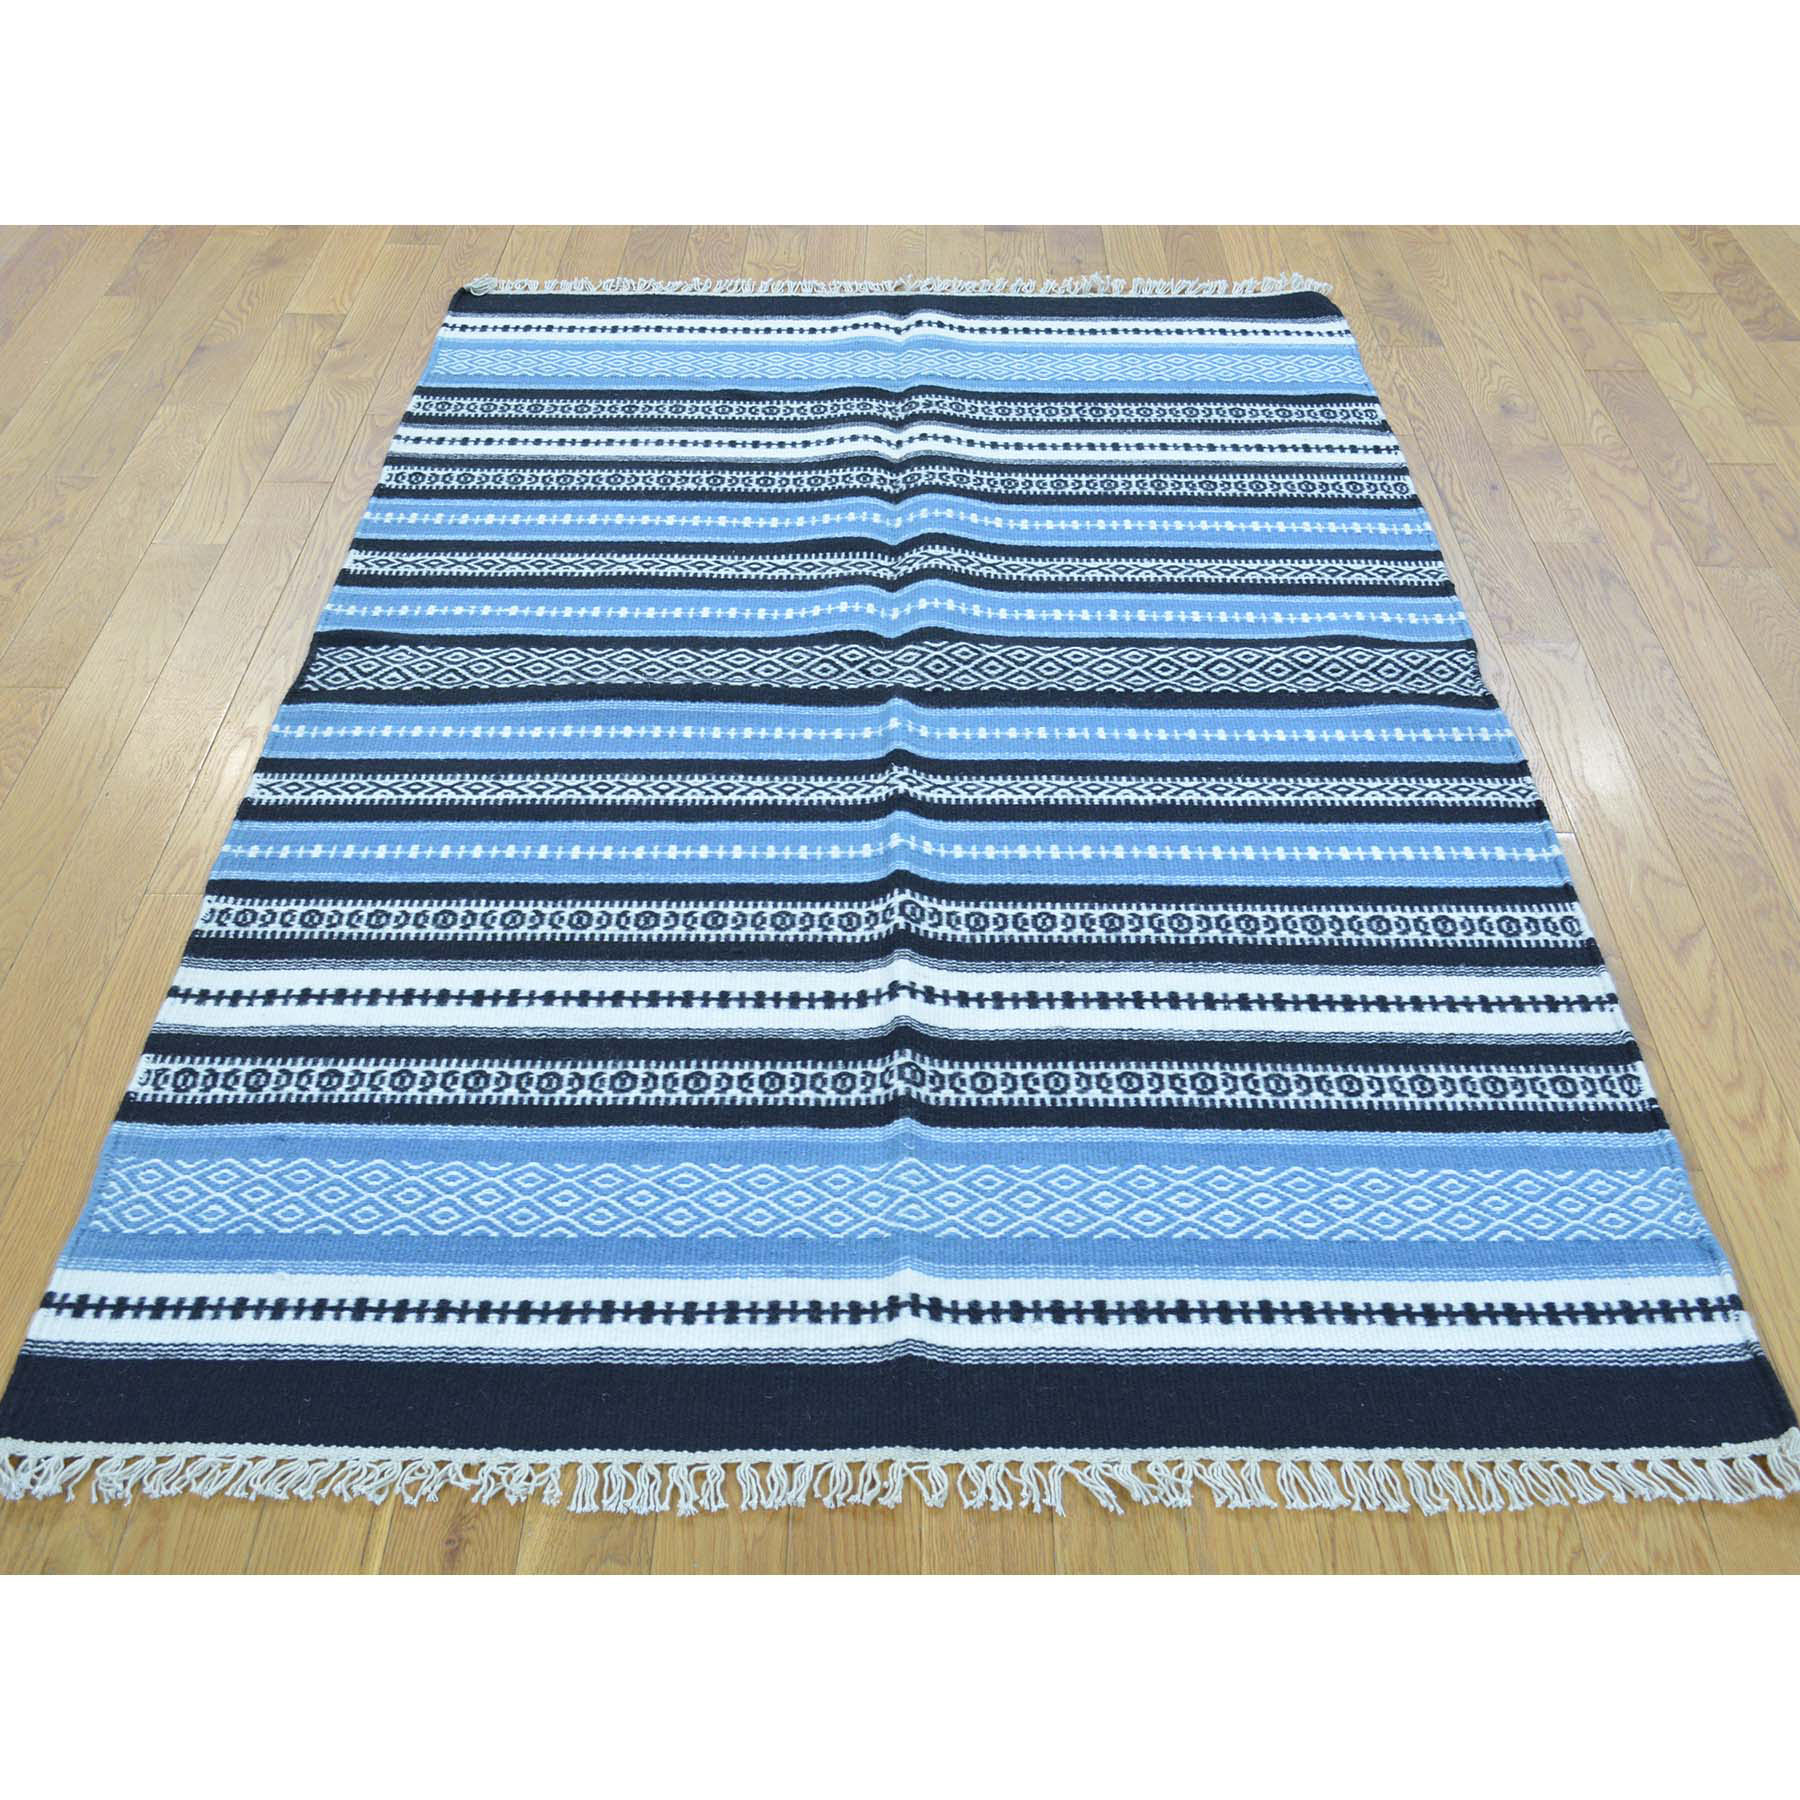 3-10 x6- Flat Weave Hand Woven Durie Kilim Striped Oriental Rug